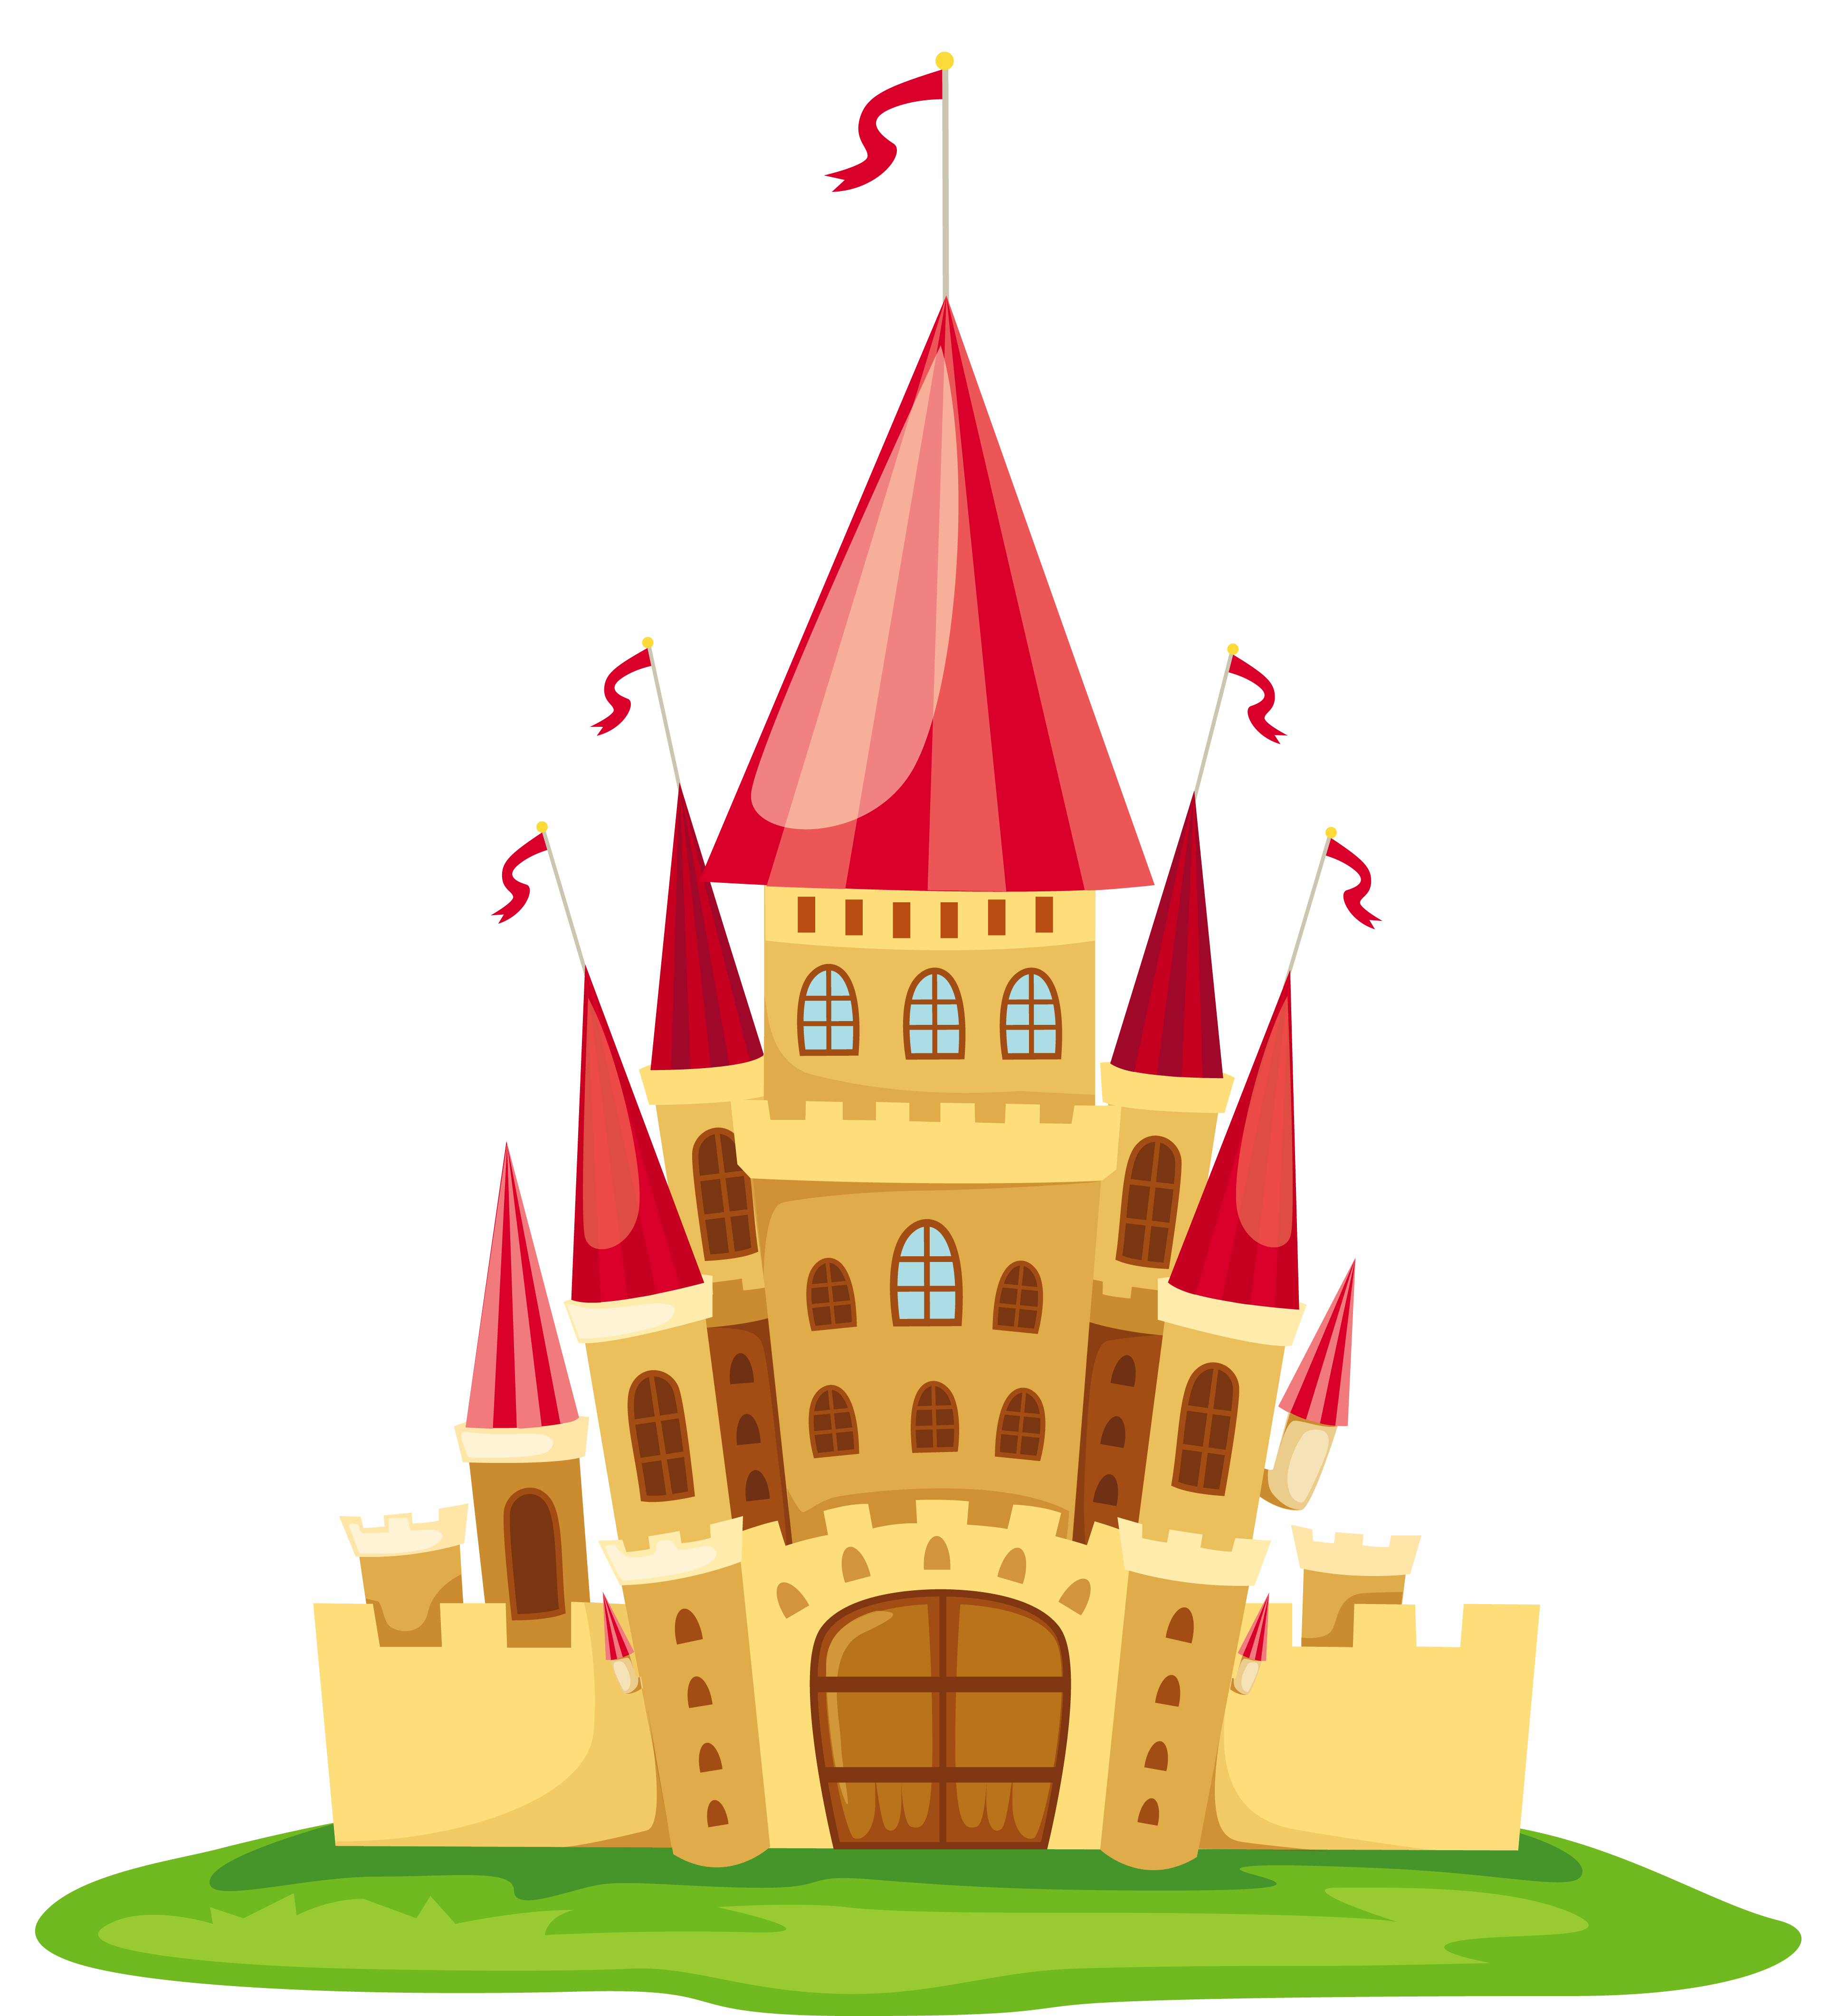 transparent castle illustration